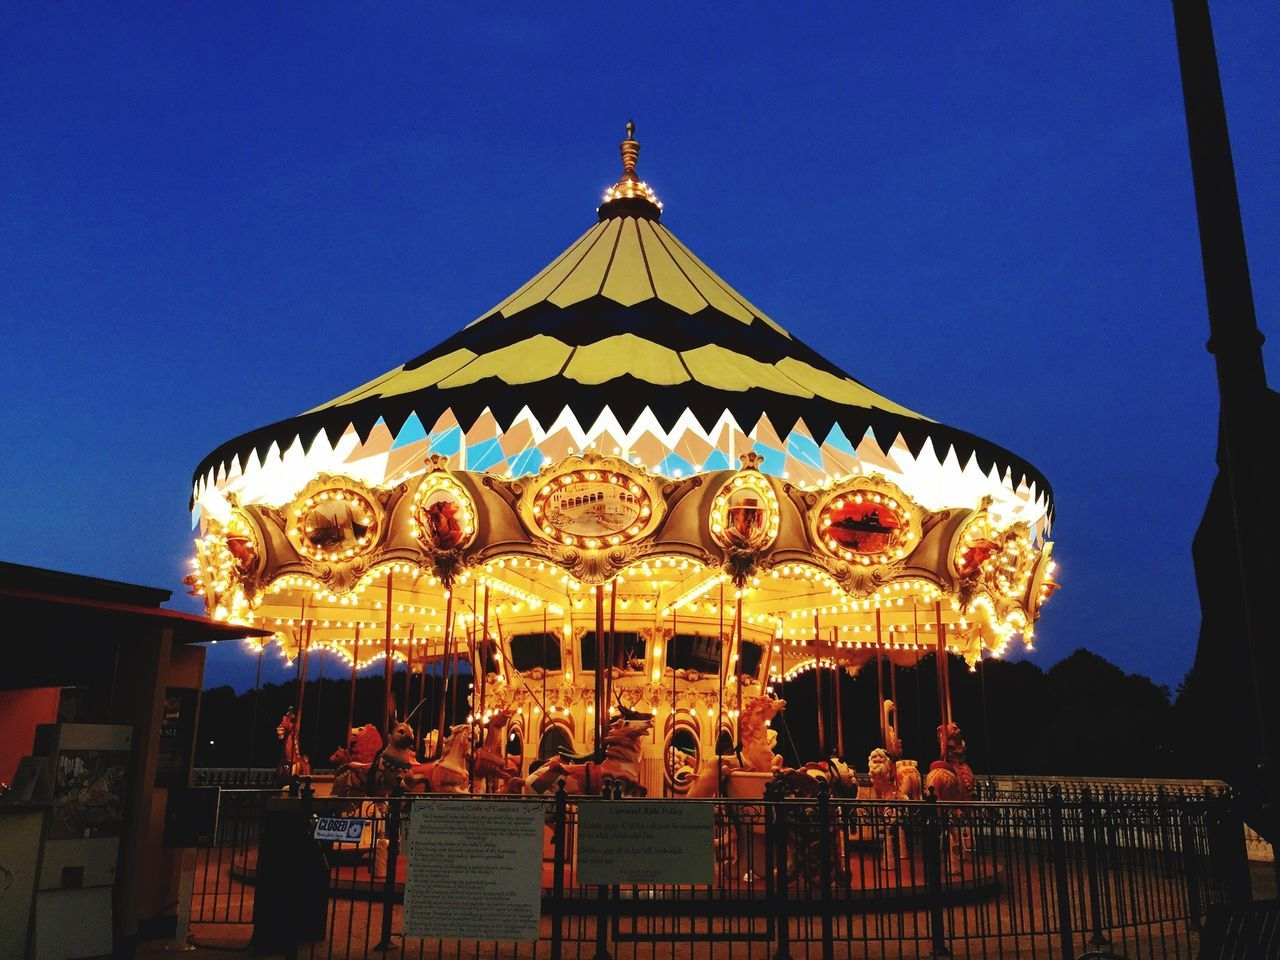 amusement park, arts culture and entertainment, carousel, clear sky, amusement park ride, low angle view, outdoors, built structure, blue, illuminated, night, no people, sky